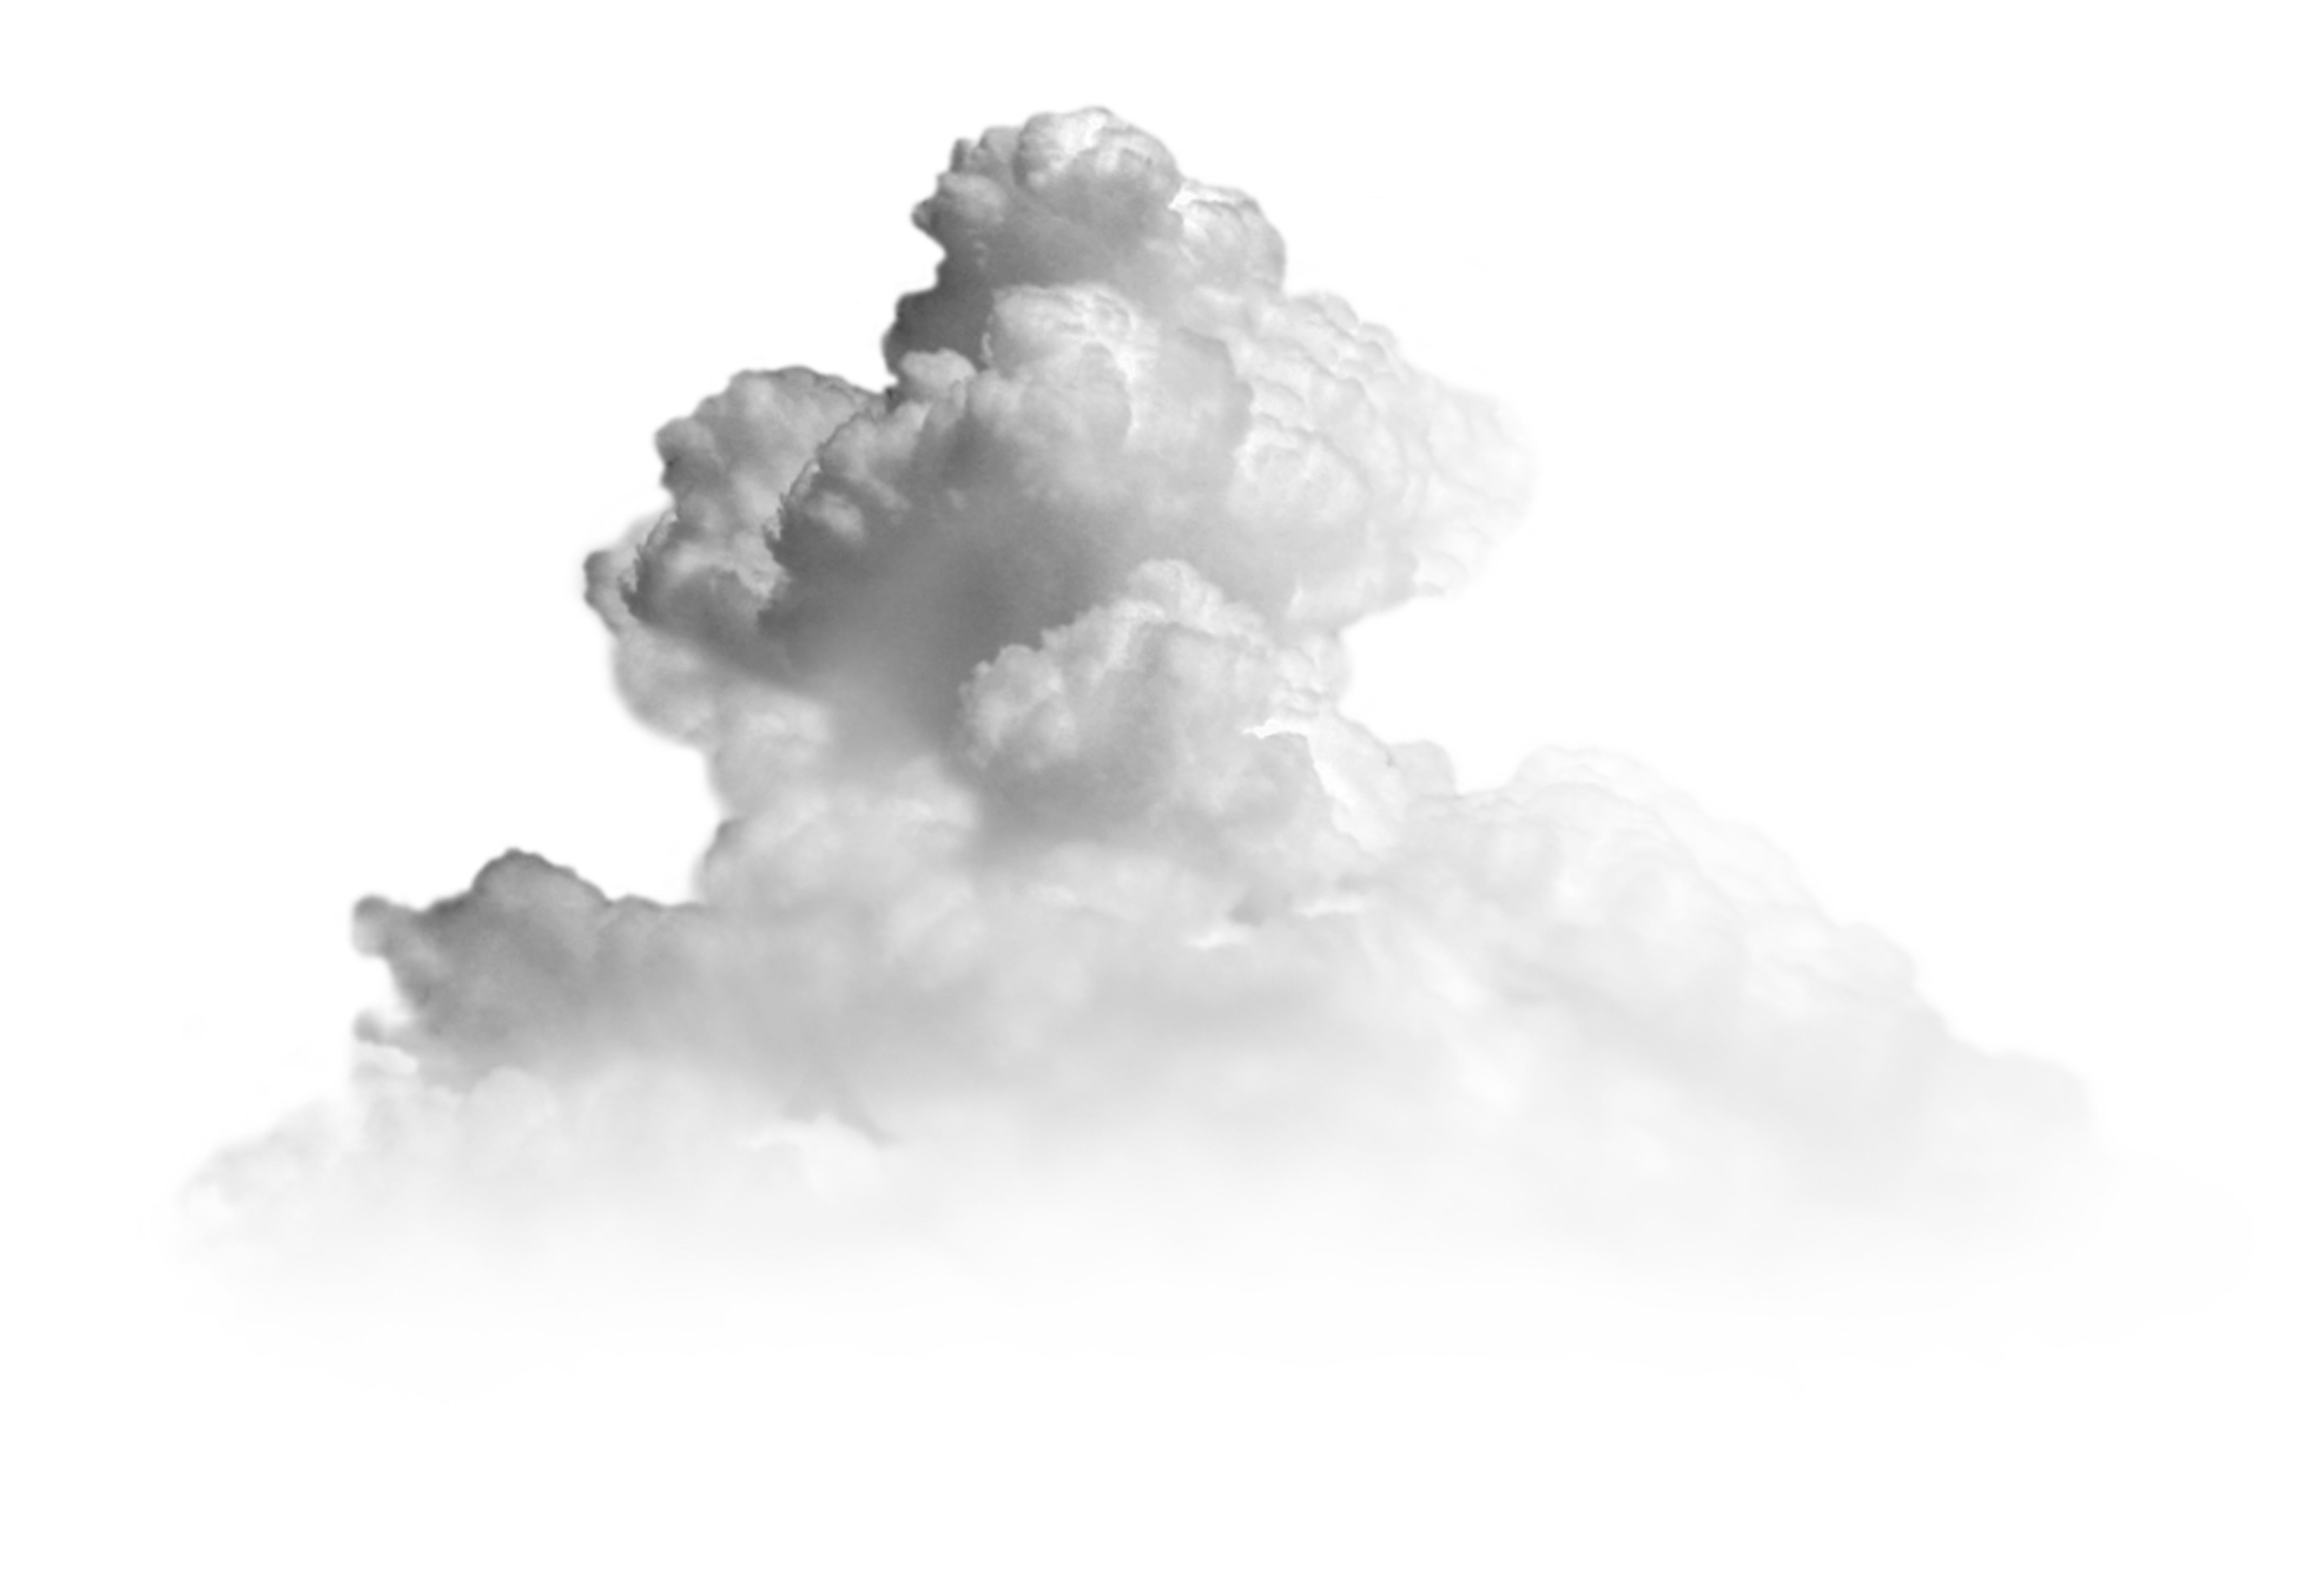 Clipart clouds png. Collection of free cumuli